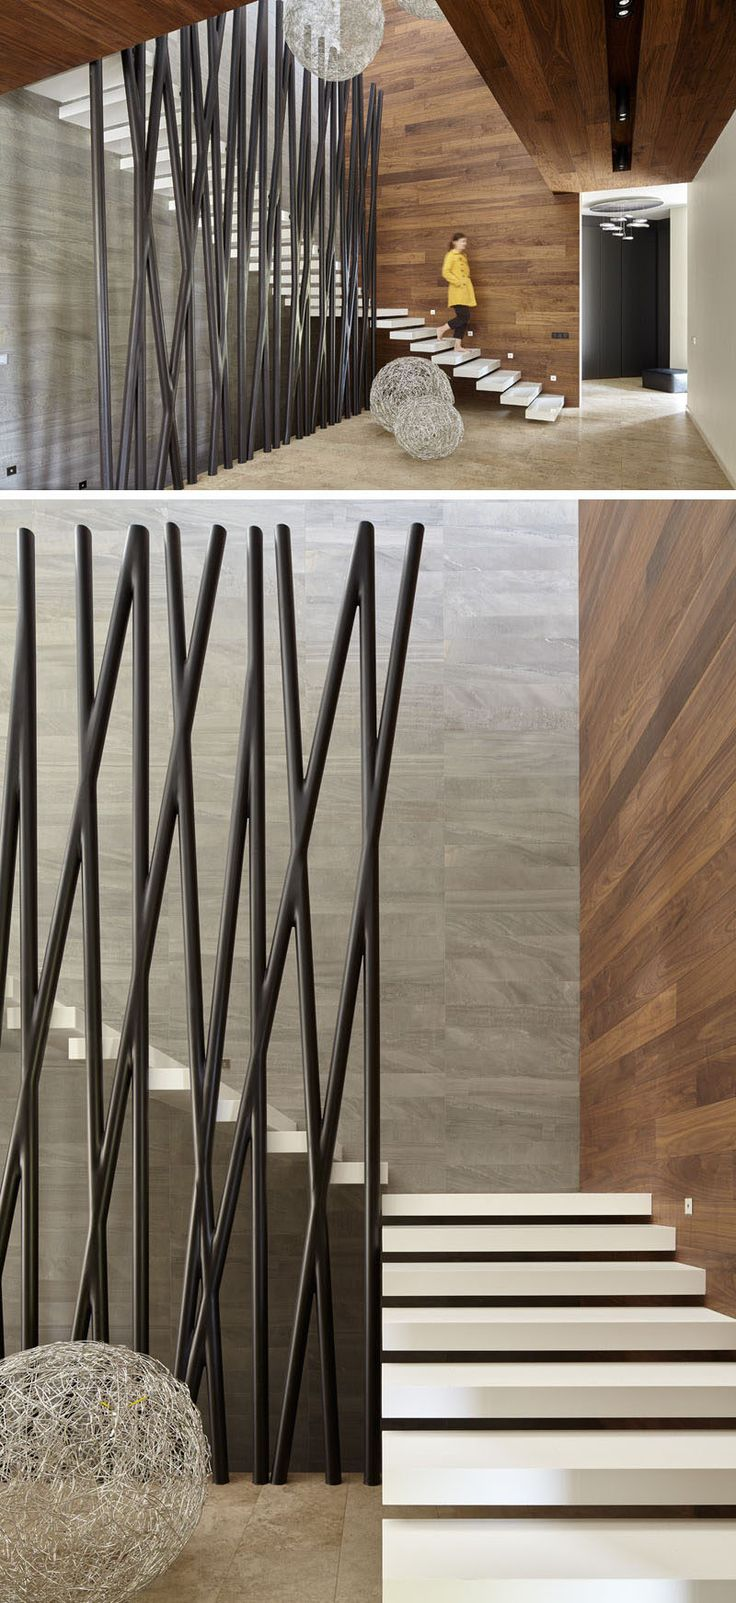 The large black metal poles protecting the side of this floating staircase have both a natural and industrial look to them that helps create a modern look throughout the home.